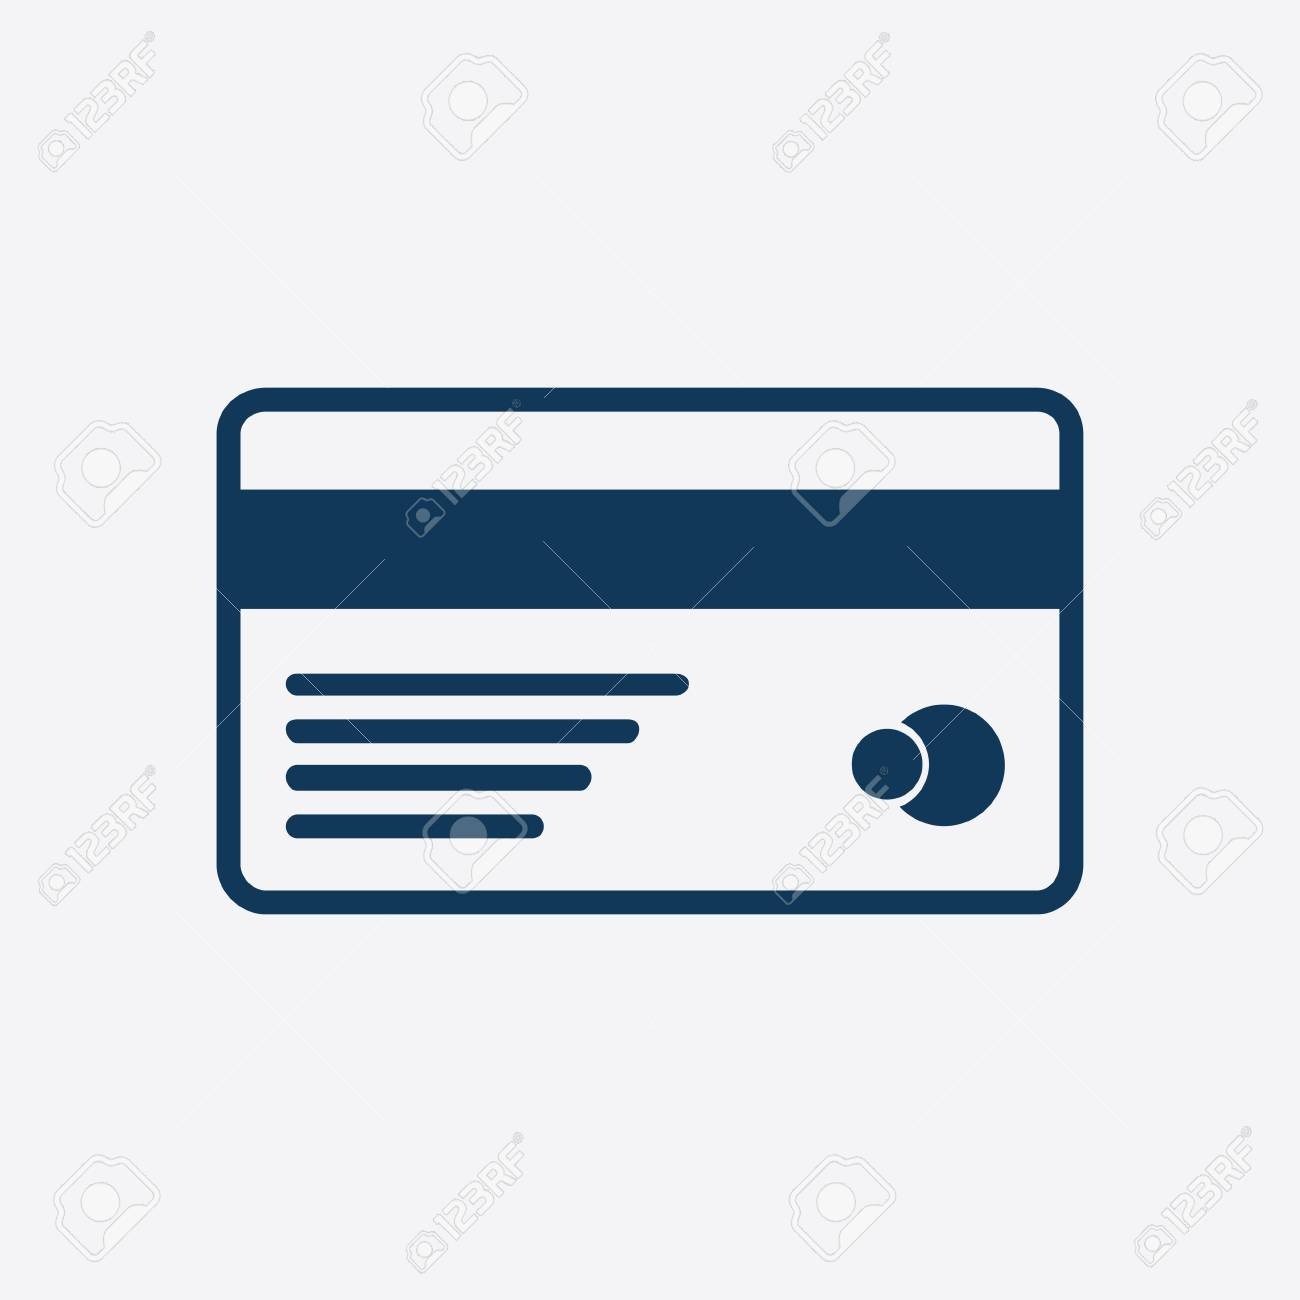 vector credit card icon flat design style royalty free cliparts rh 123rf com major credit card logos vector credit card logo vector images